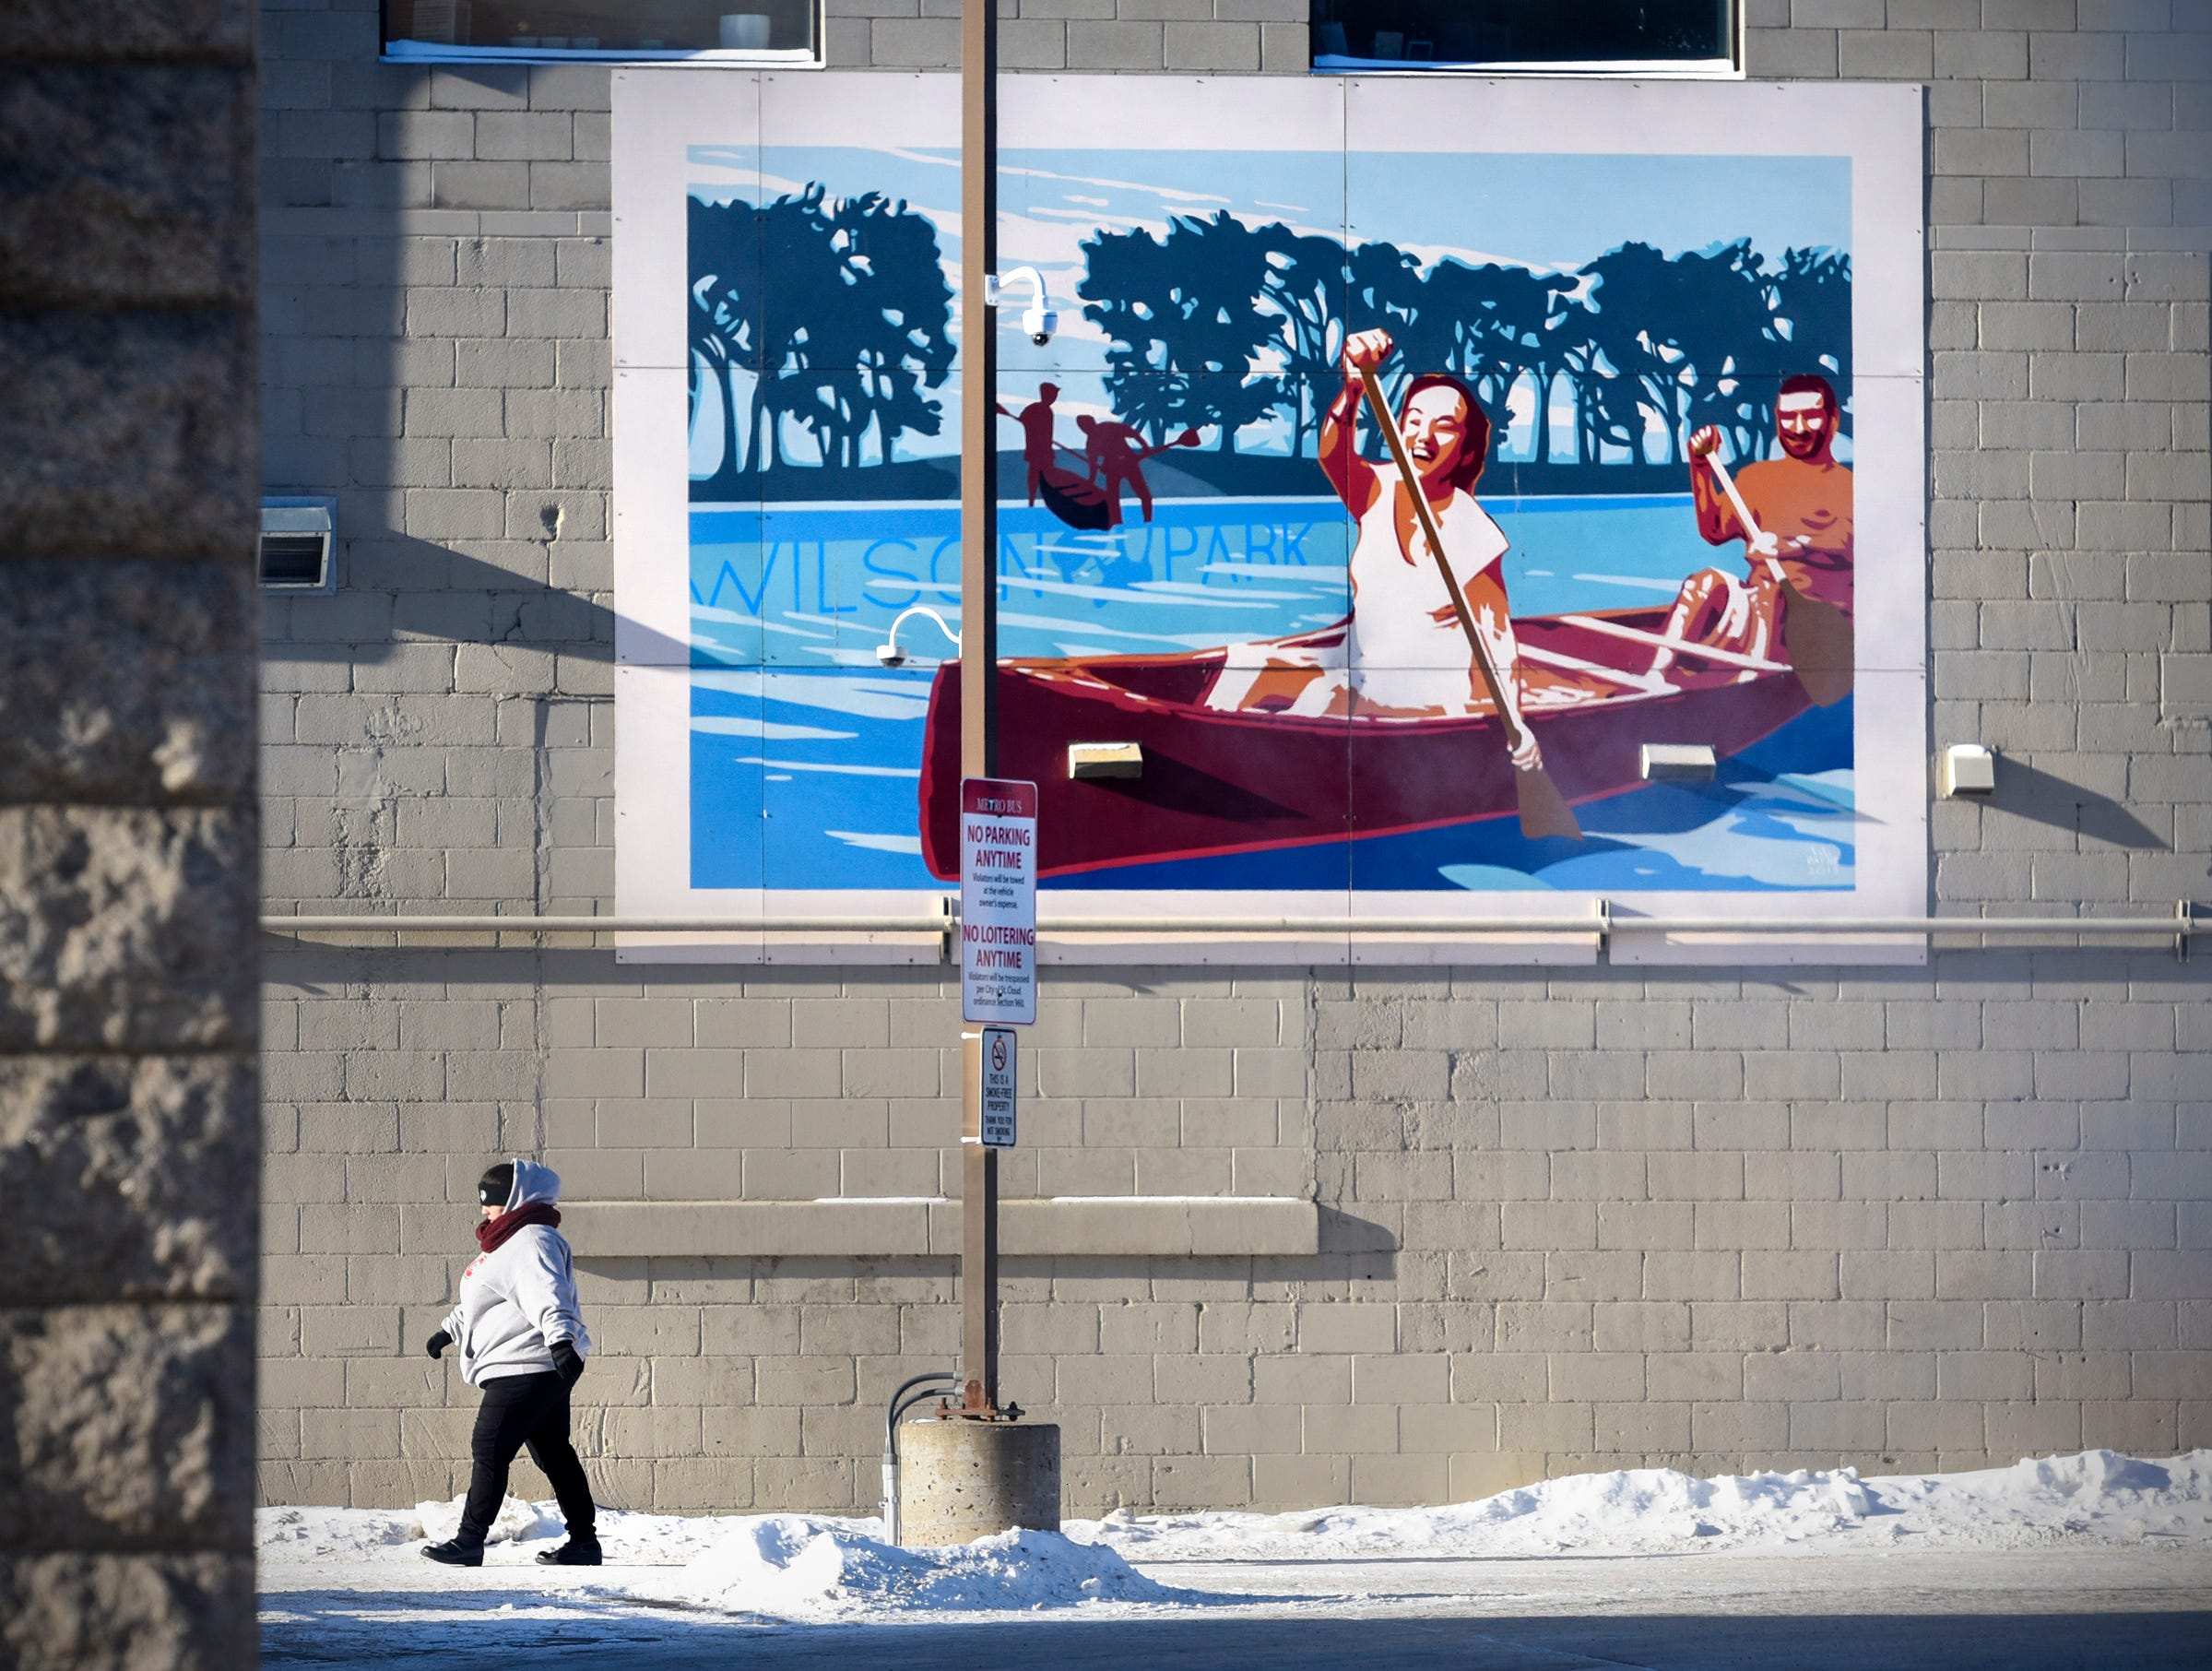 A woman walks past a mural near the Metro Bus Transit Center Wednesday, Jan. 30, 2019, in downtown St. Cloud, Minn. Morning temperatures in the area were in the minus 30 range.